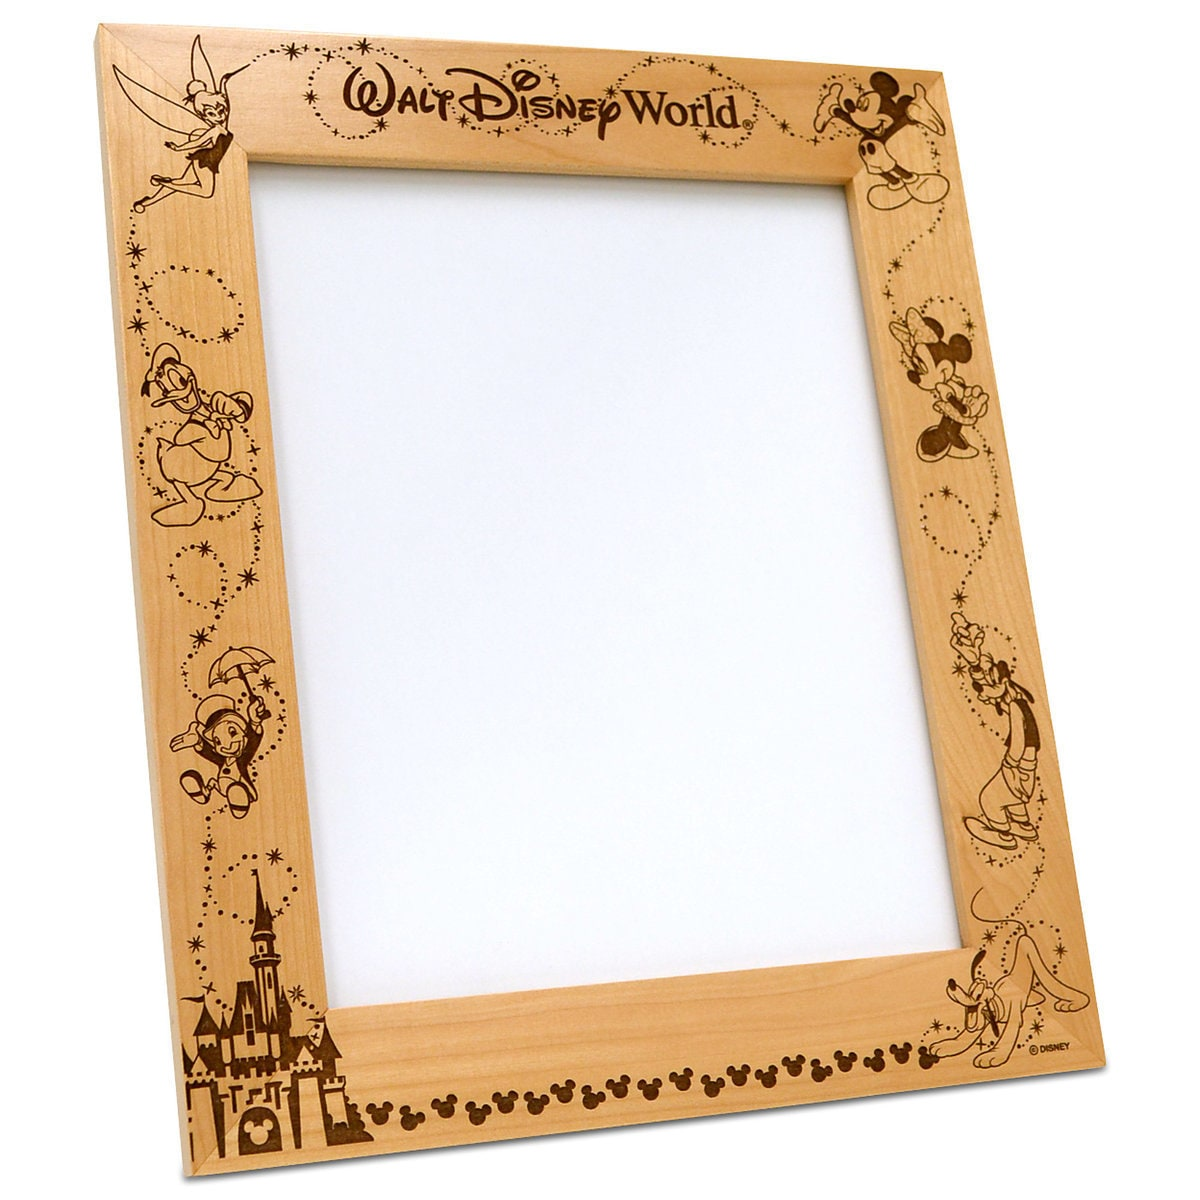 Walt Disney World Frame by Arribas - Personalizable | shopDisney